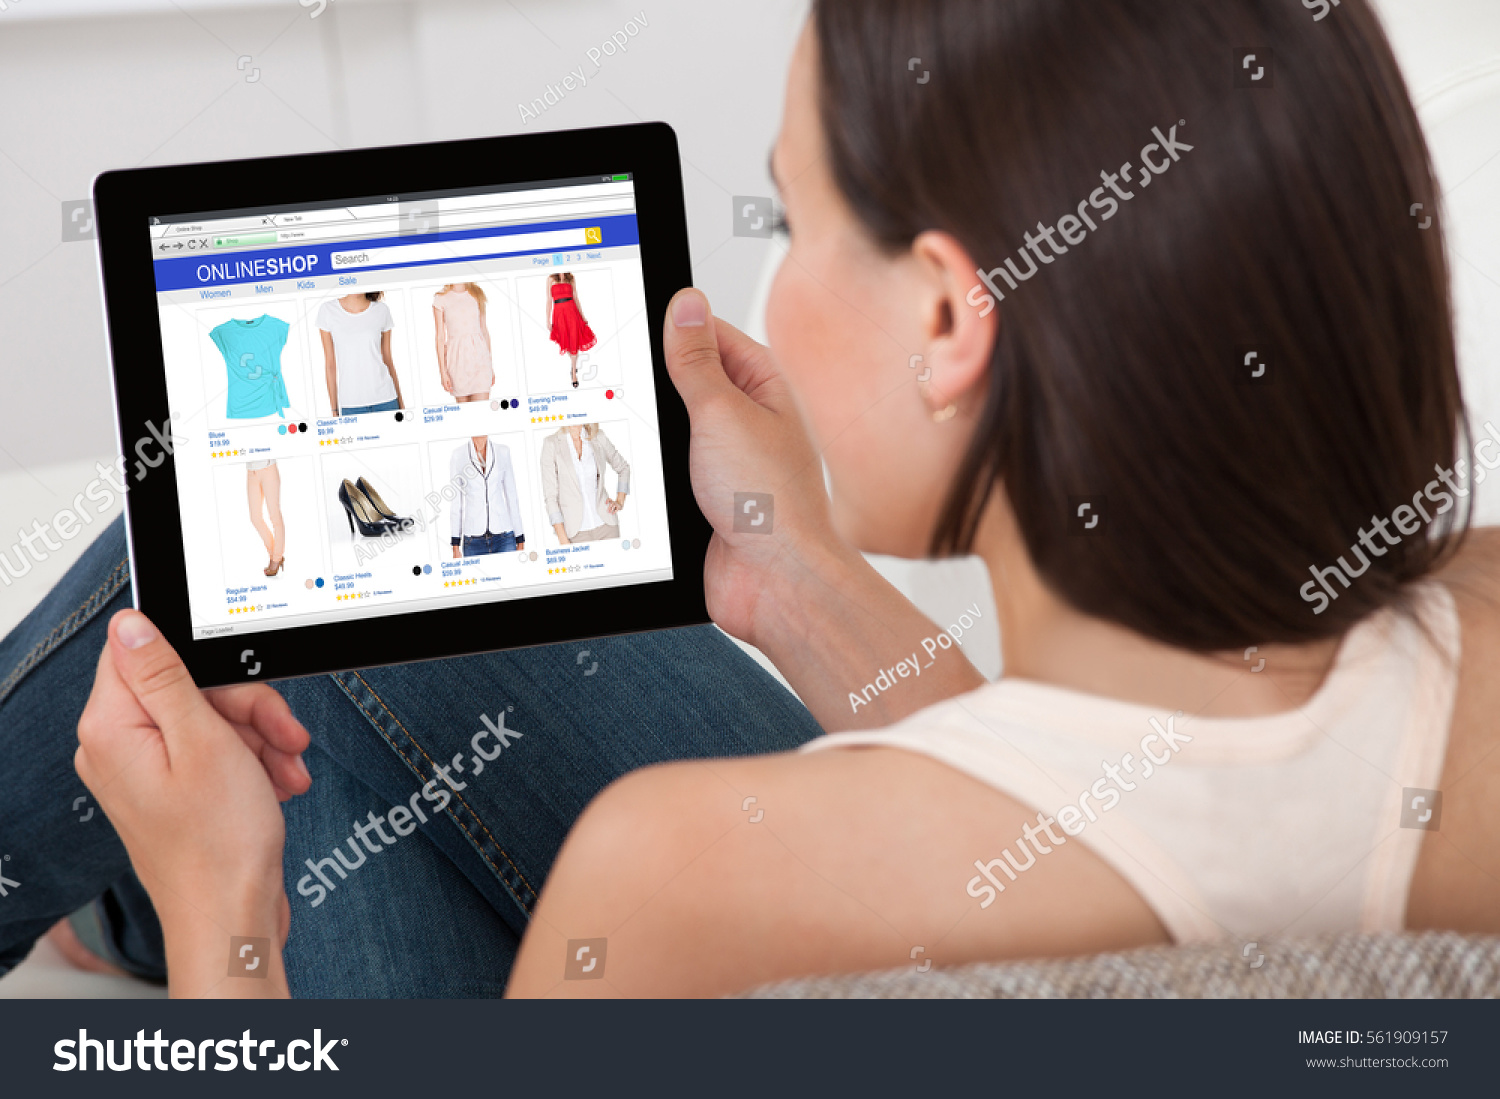 closeup woman doing online shopping on stock photo 561909157 shutterstock. Black Bedroom Furniture Sets. Home Design Ideas